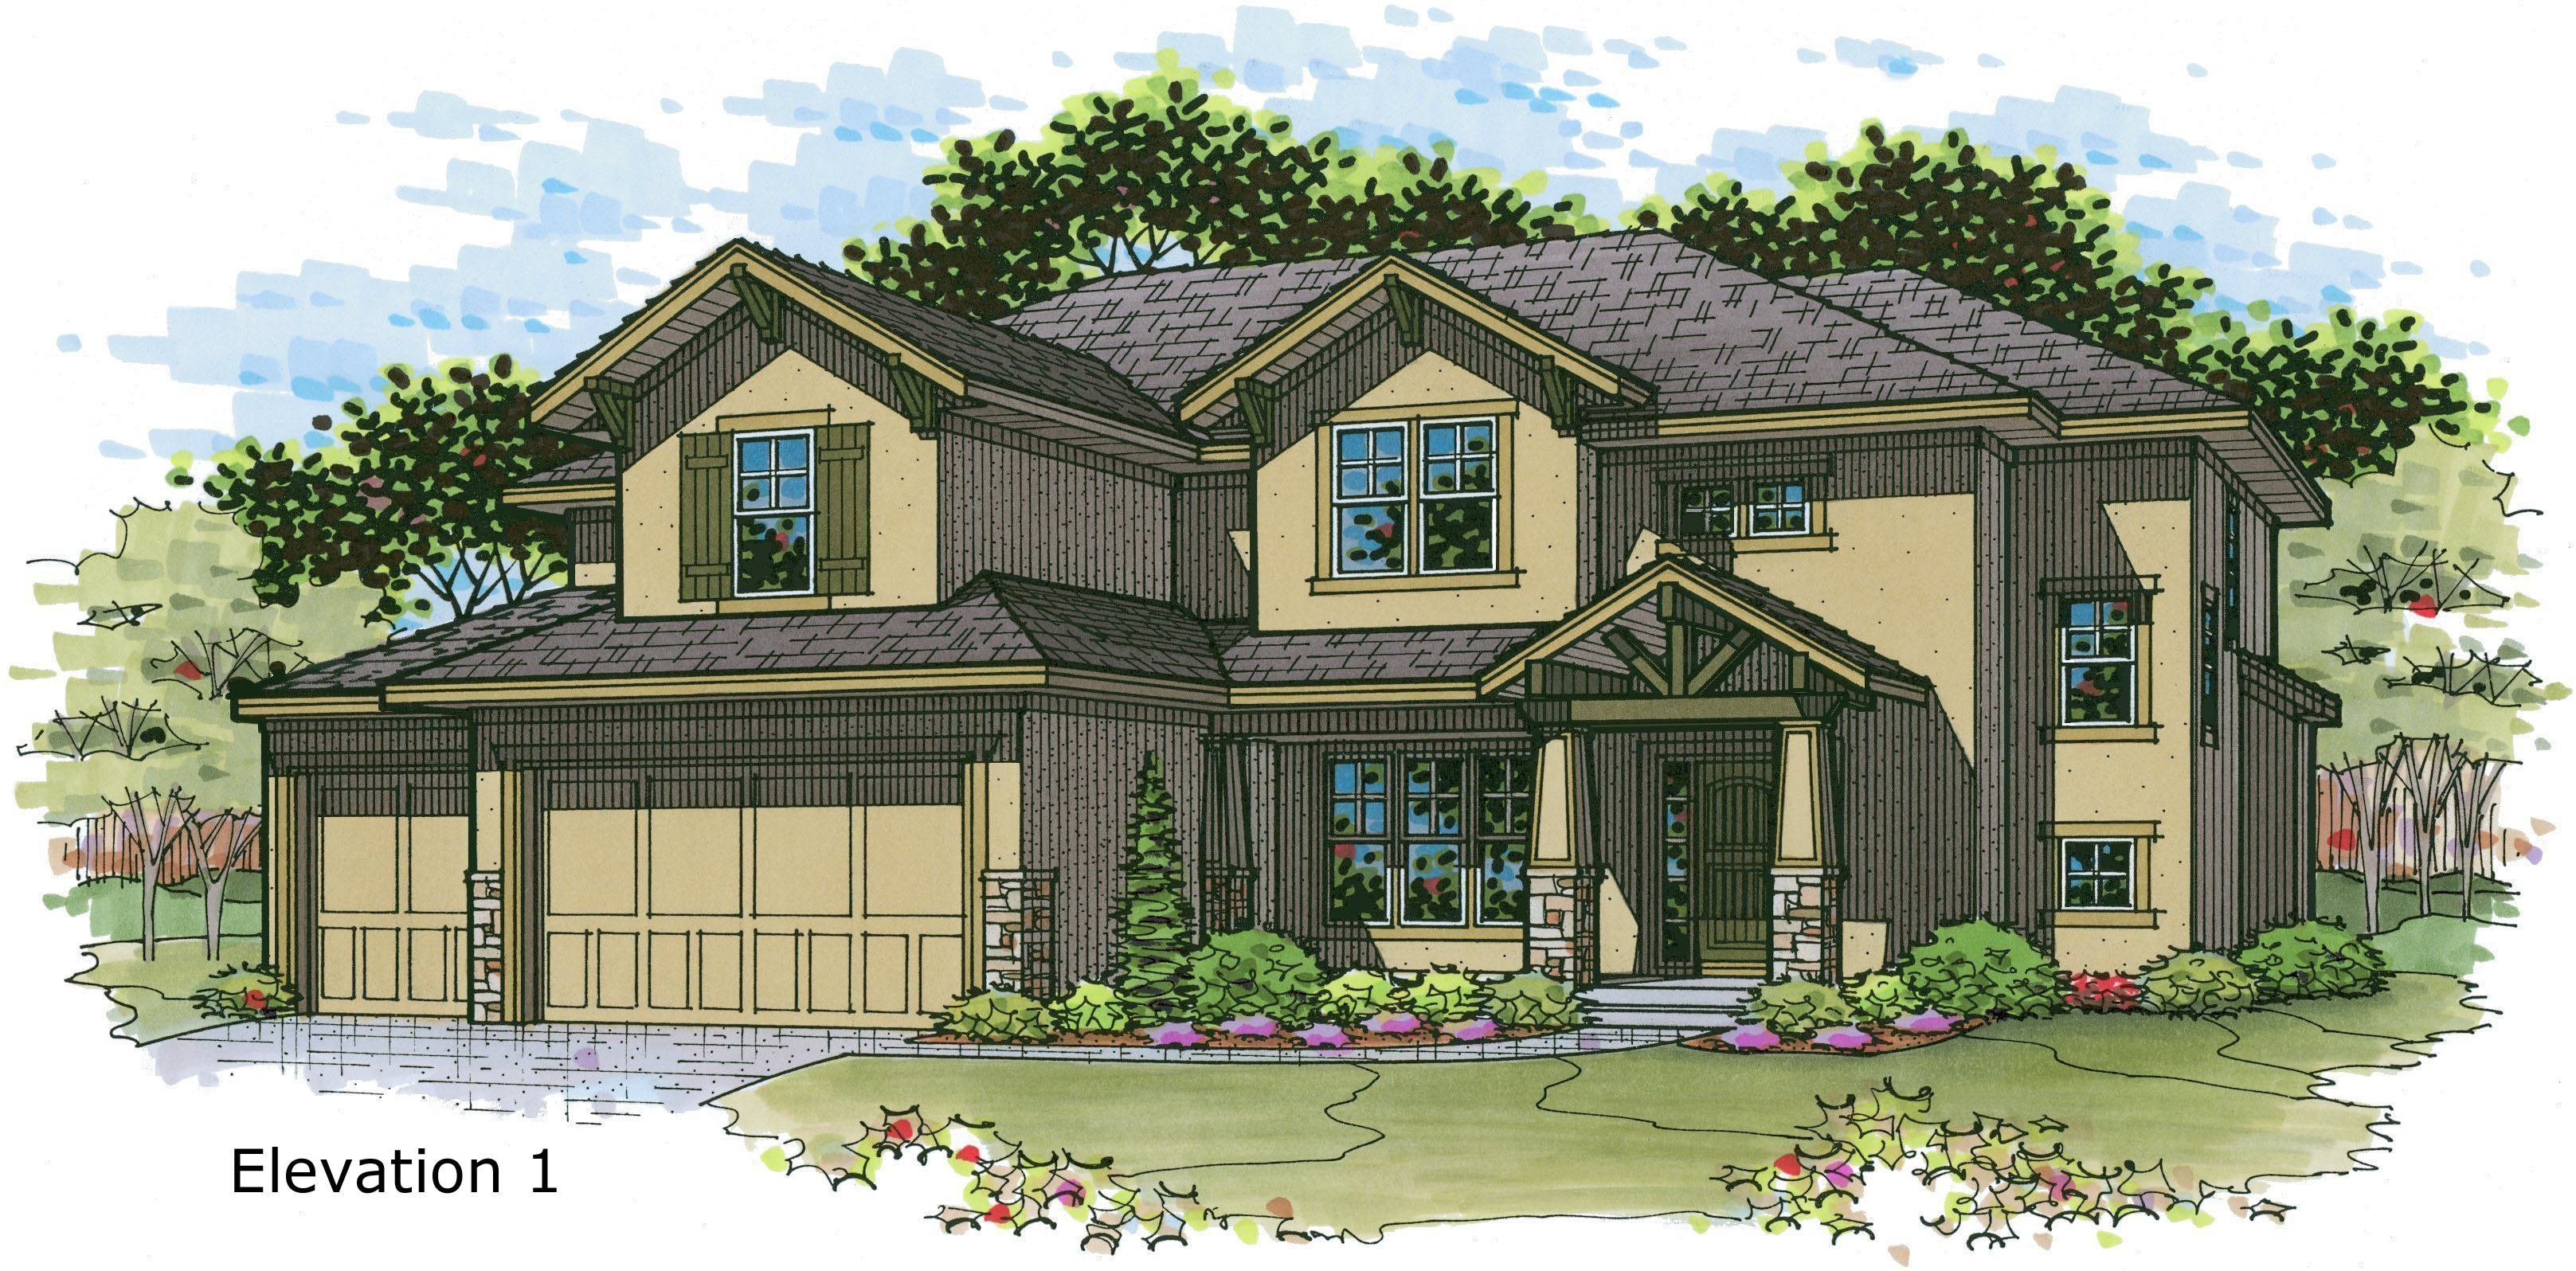 Mission Ranch | Fox Ridge Floor Plans on ranch plans, prairie style home plans, barn style home plans, foyer home plans, pioneer style home plans, craftsman house, french normandy style home plans, 4br home plans, red brick home plans, empty nesters home plans, craftsman floor plans, georgian style home plans, greene and greene style home plans, arts & crafts style home plans, turn of the century home plans, english country style home plans, split plan home plans, craftsmen style home plans, country farm style home plans, historic california craftsman home plans,